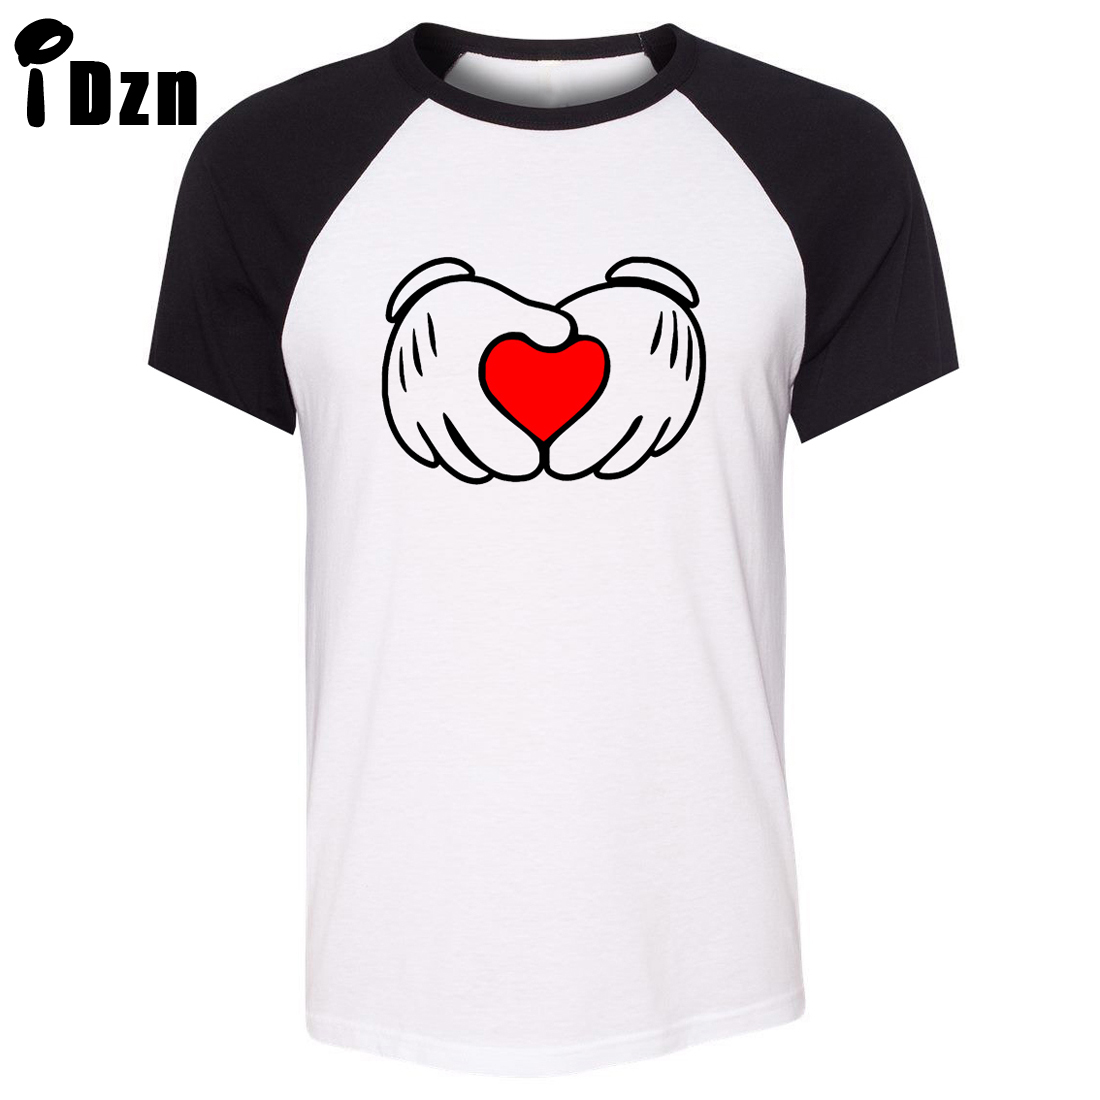 Heart design t shirt - Idzn Unisex Summer T Shirt Funny Red Love Heart Gesture Art Pattern Design Raglan Short